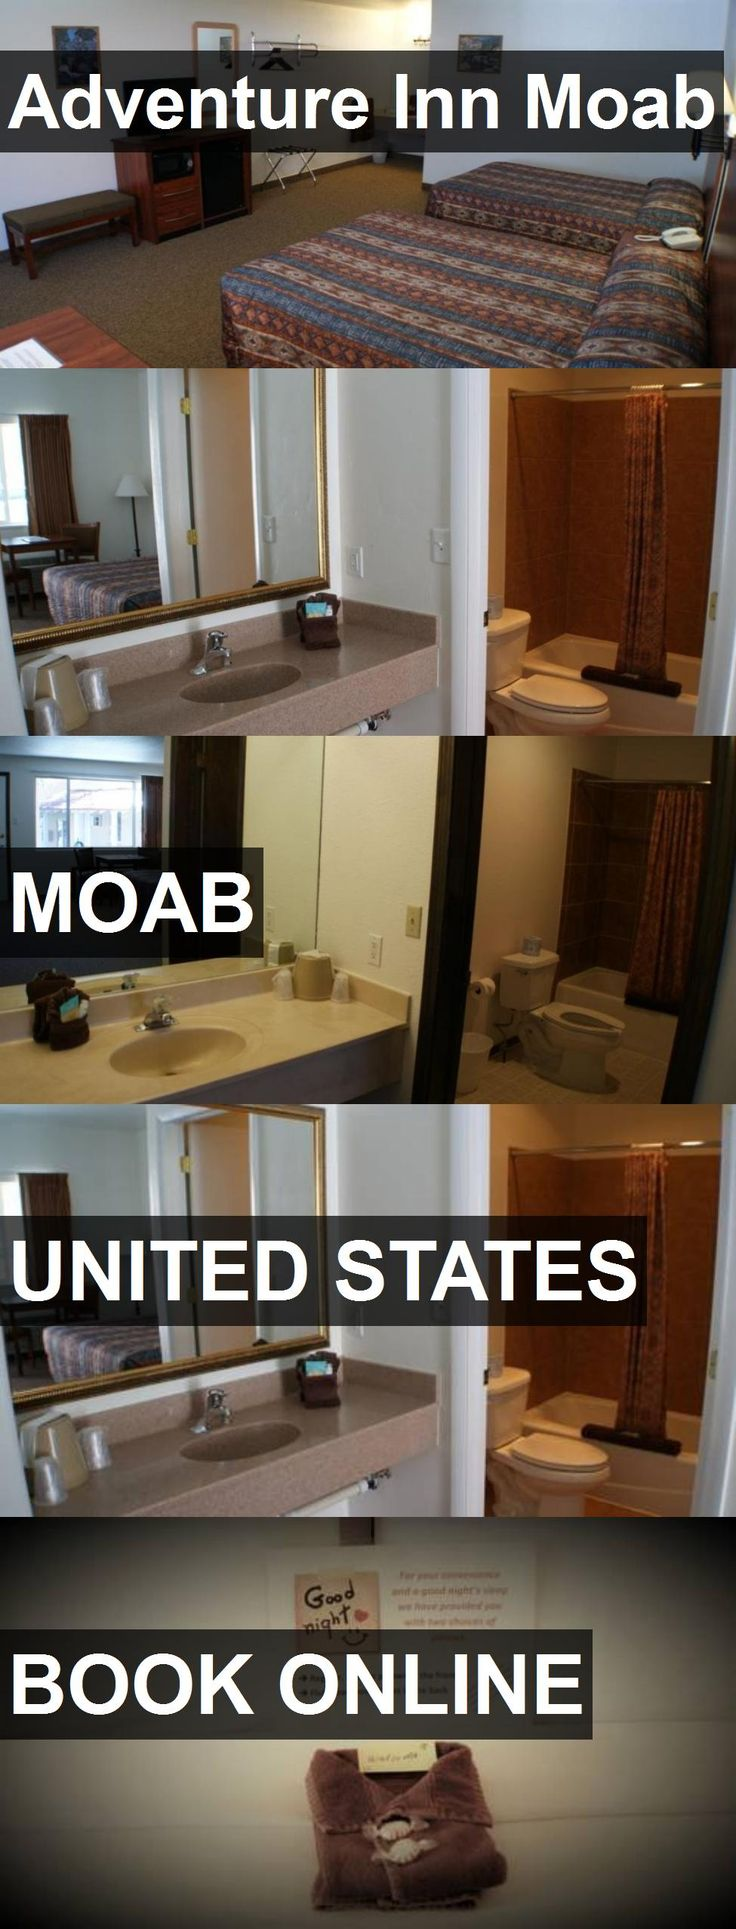 Hotel Adventure Inn Moab in Moab, United States. For more information, photos, reviews and best prices please follow the link. #UnitedStates #Moab #AdventureInnMoab #hotel #travel #vacation